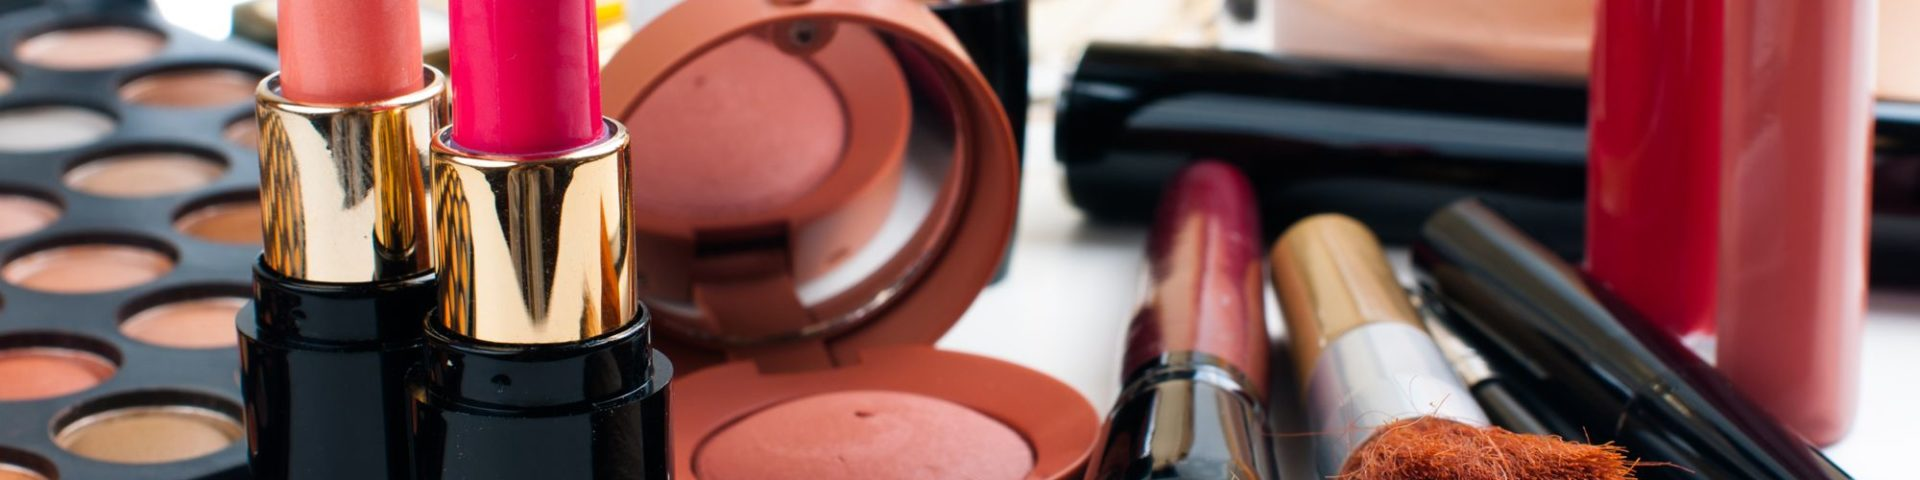 Safe And Natural Mica Pigment Powder For The Makeup Products